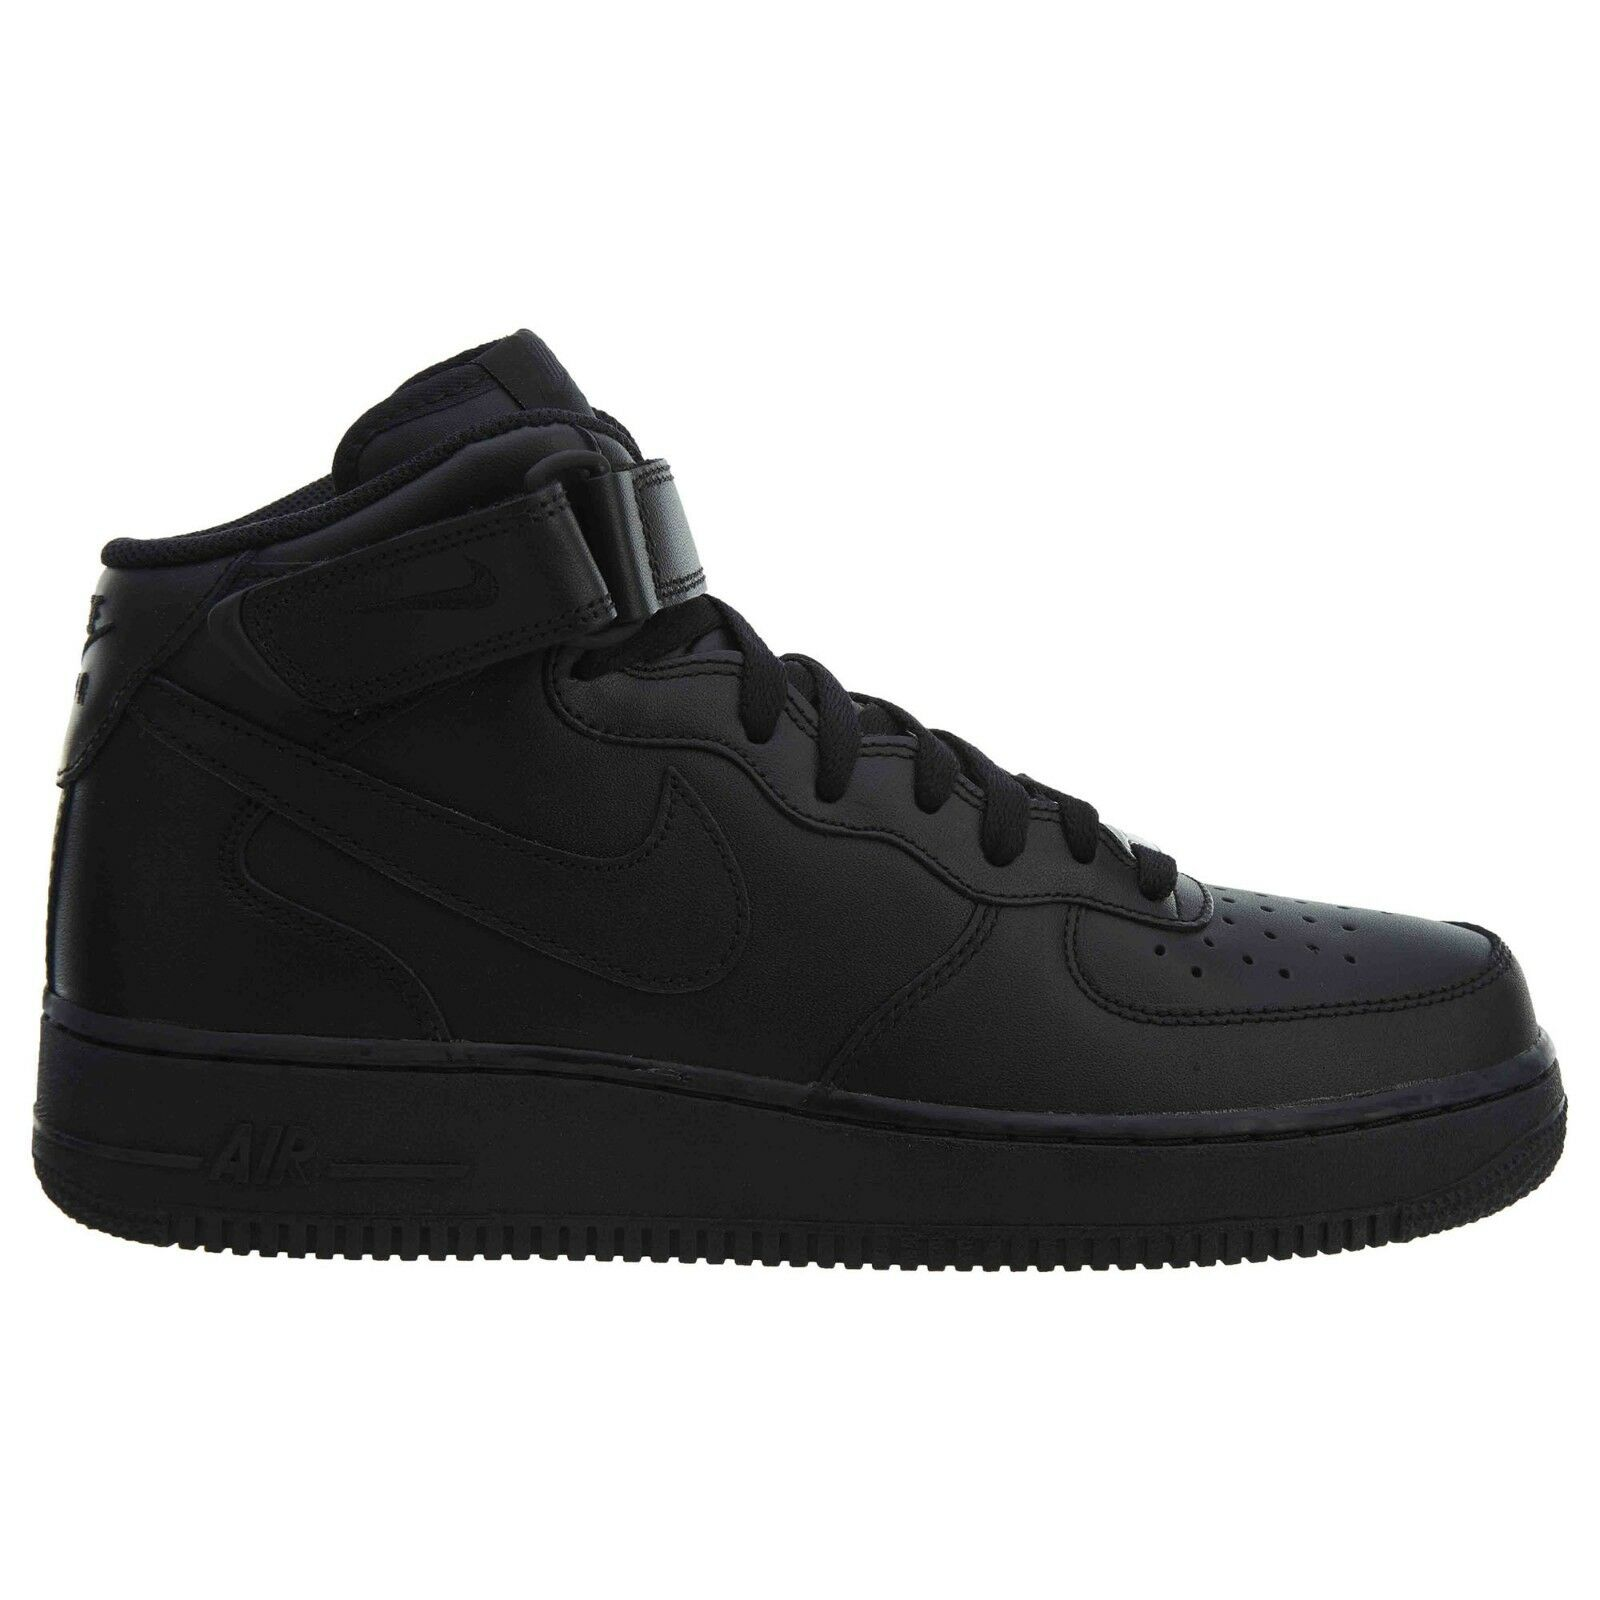 Nike Air Force 1 Mid '07 Mens 315123-001 Black Leather Athletic shoes Size 9